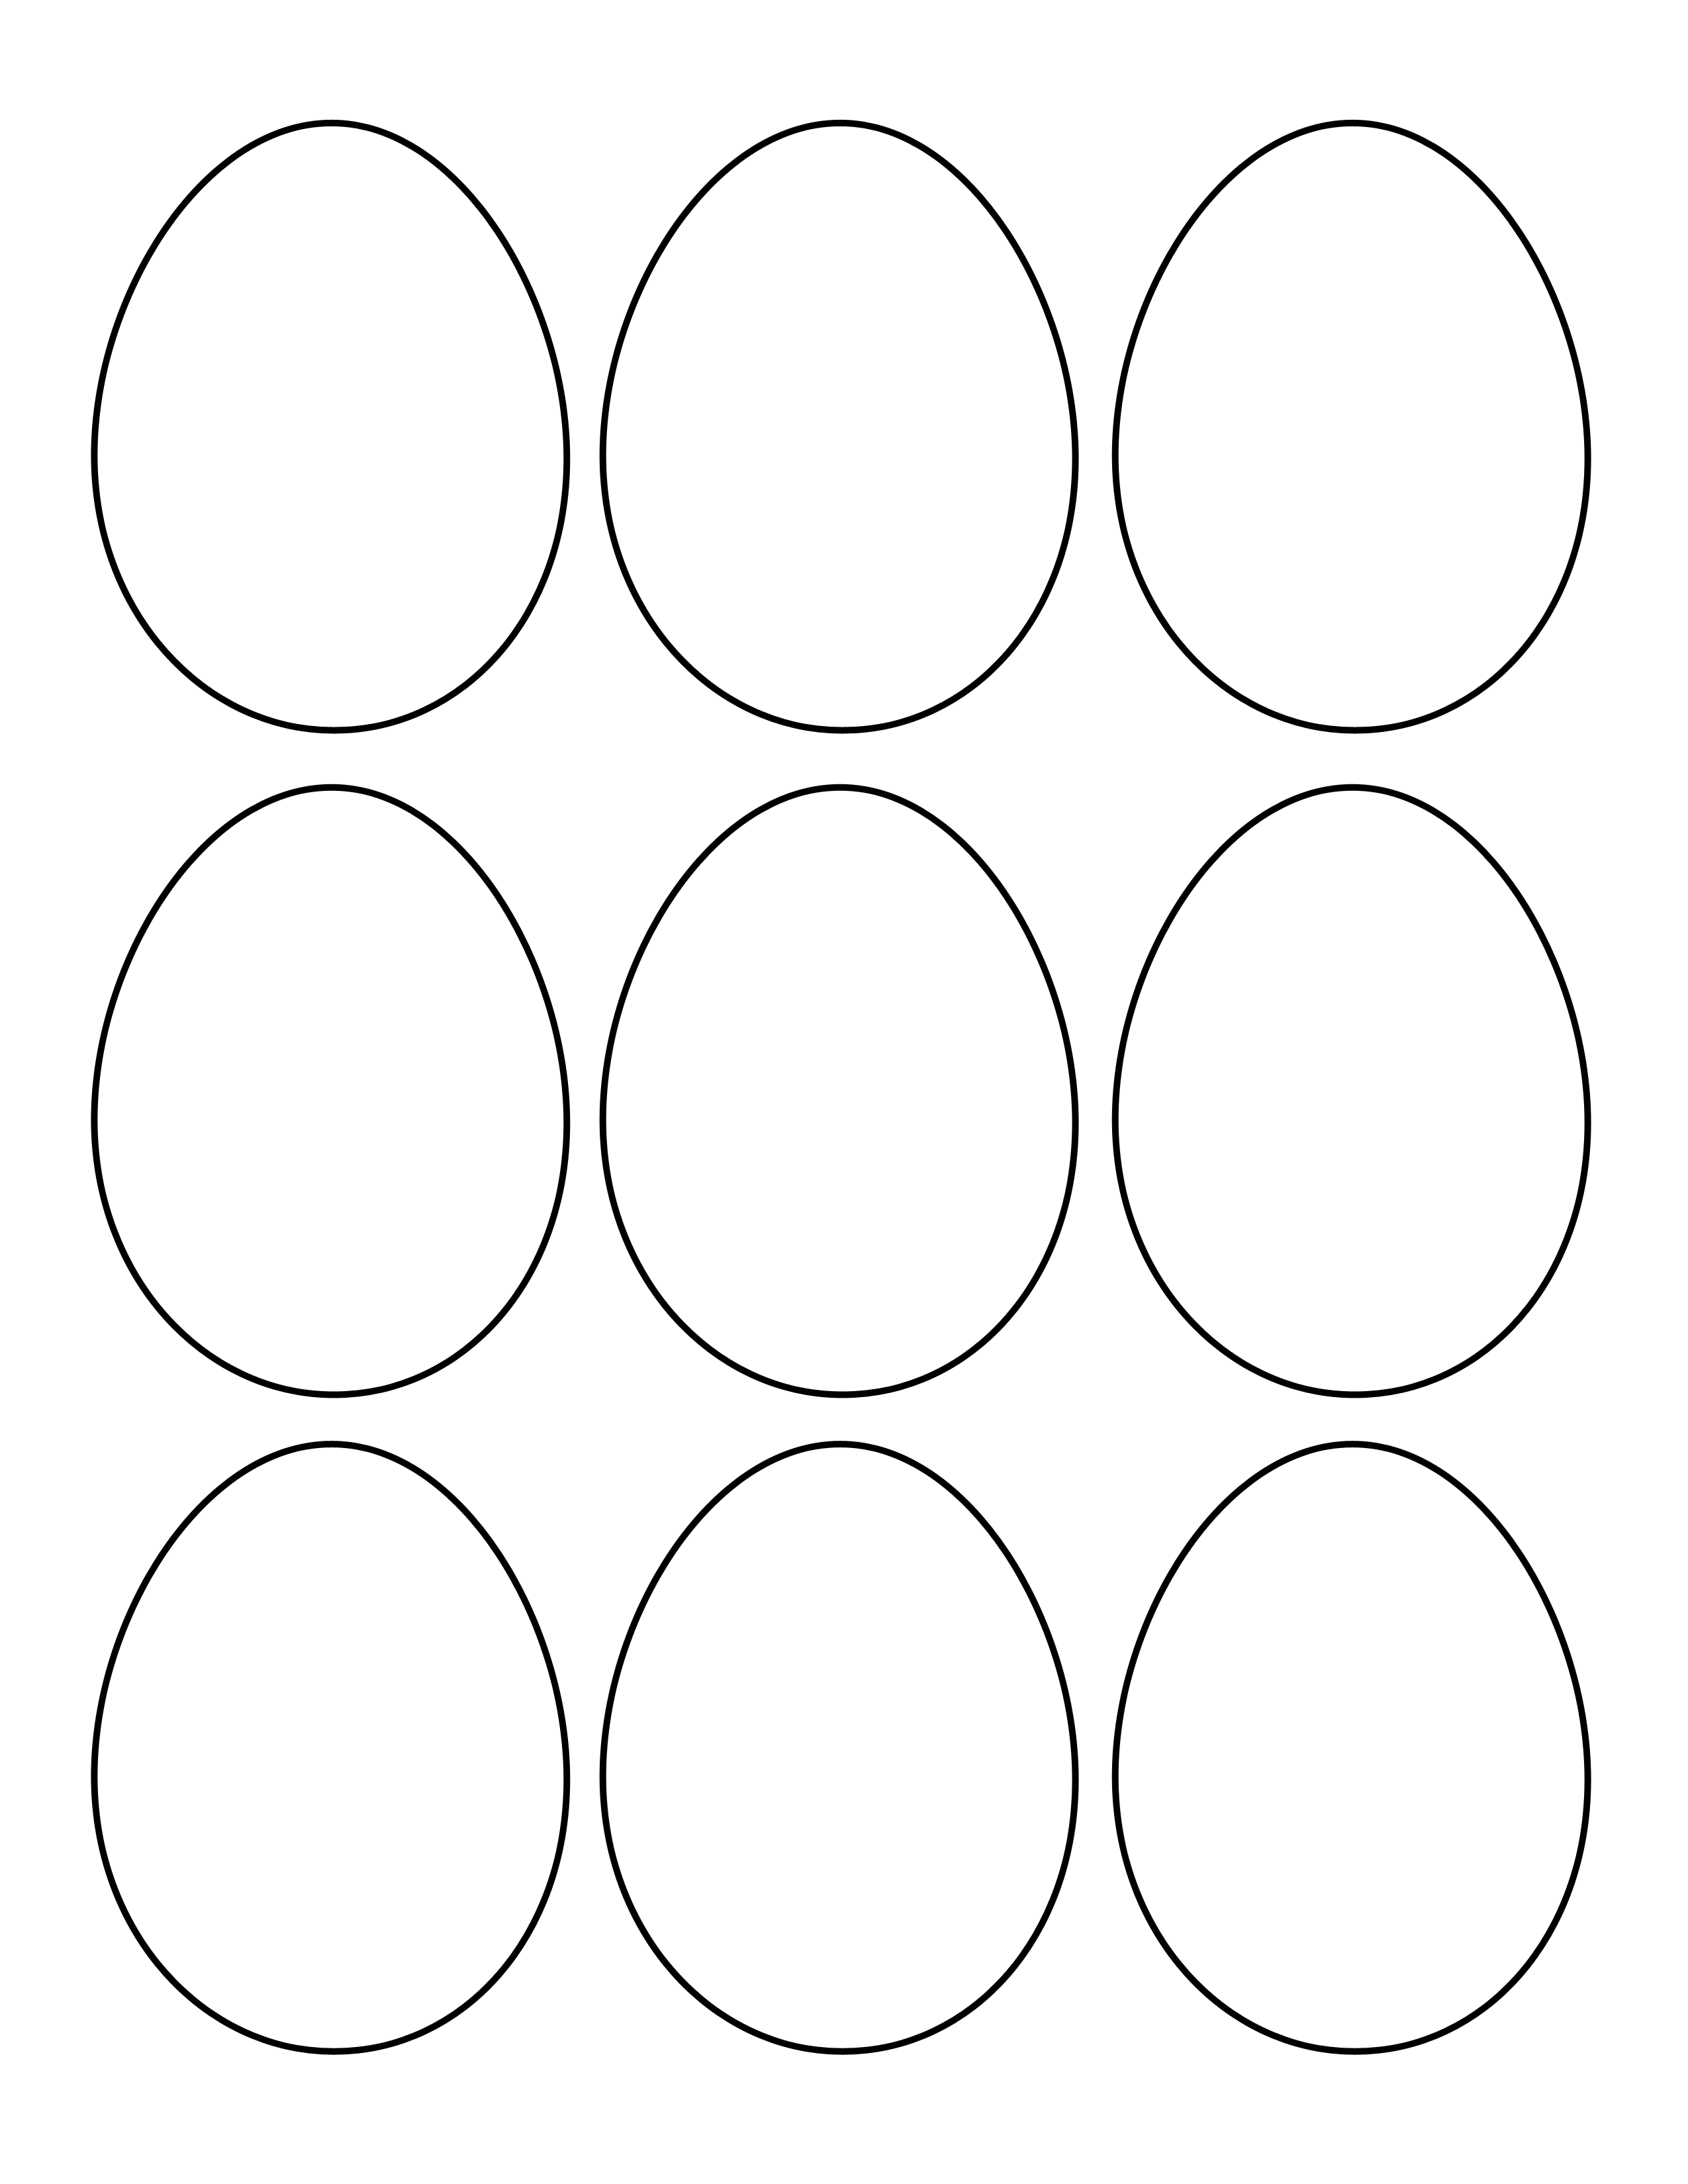 Plain Egg Shapes Easter Egg Template Easter Coloring Pages Coloring Easter Eggs